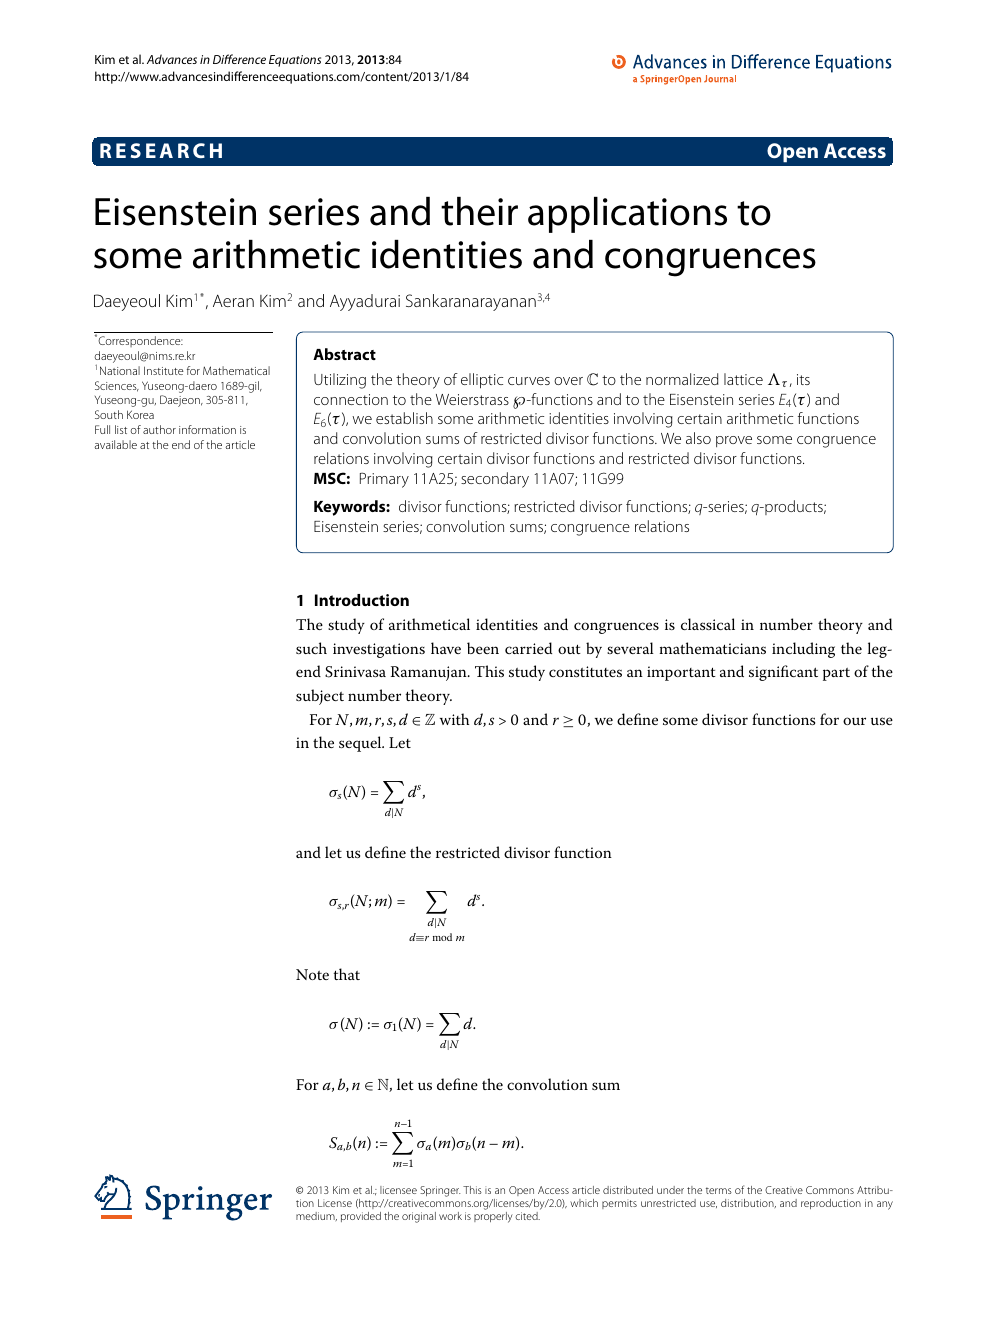 Eisenstein Series and Automorphic $L$-Functions